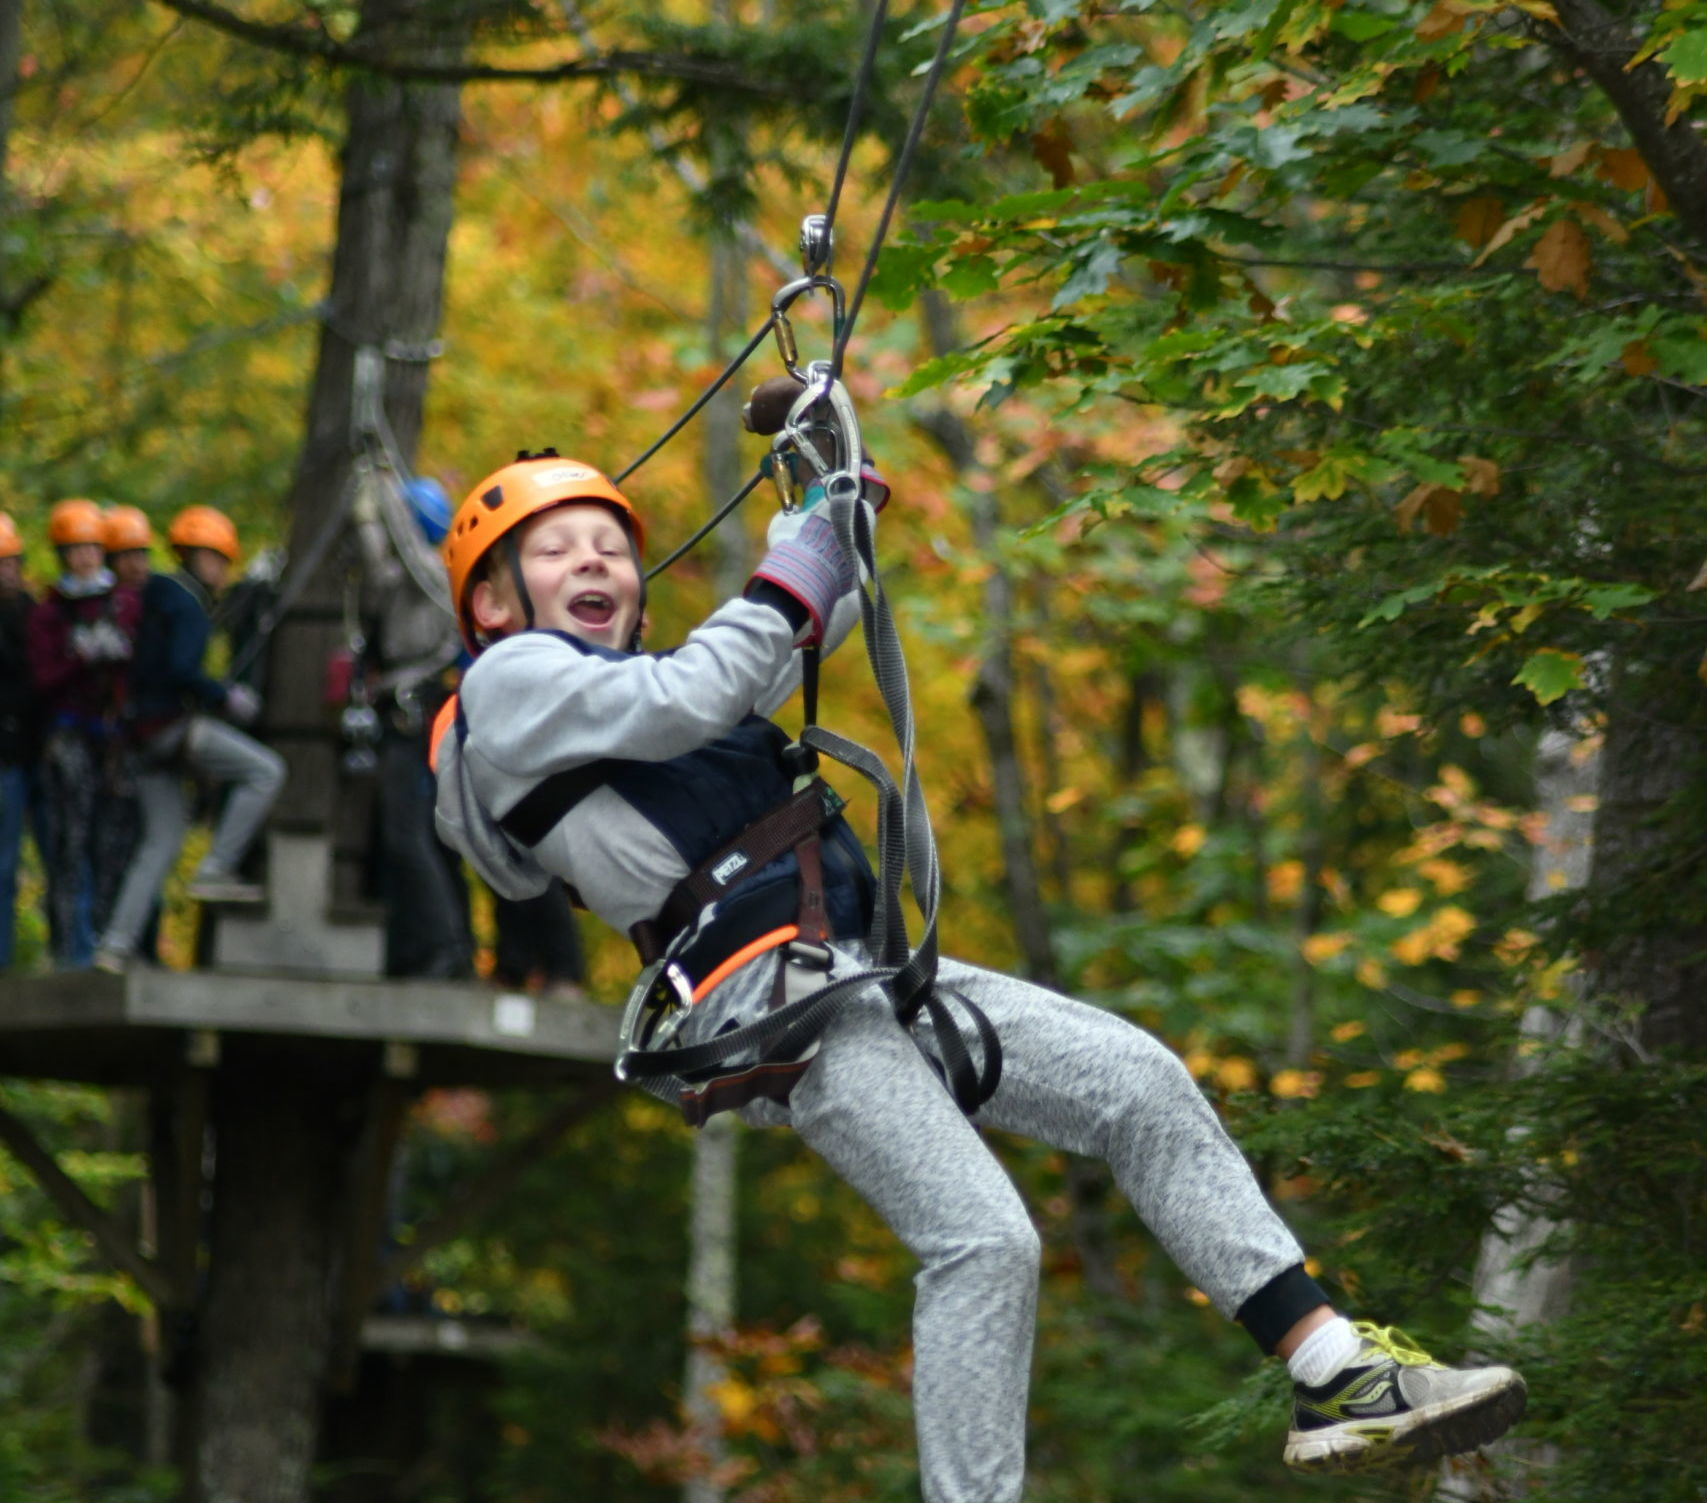 Young Boy Zipping in fall